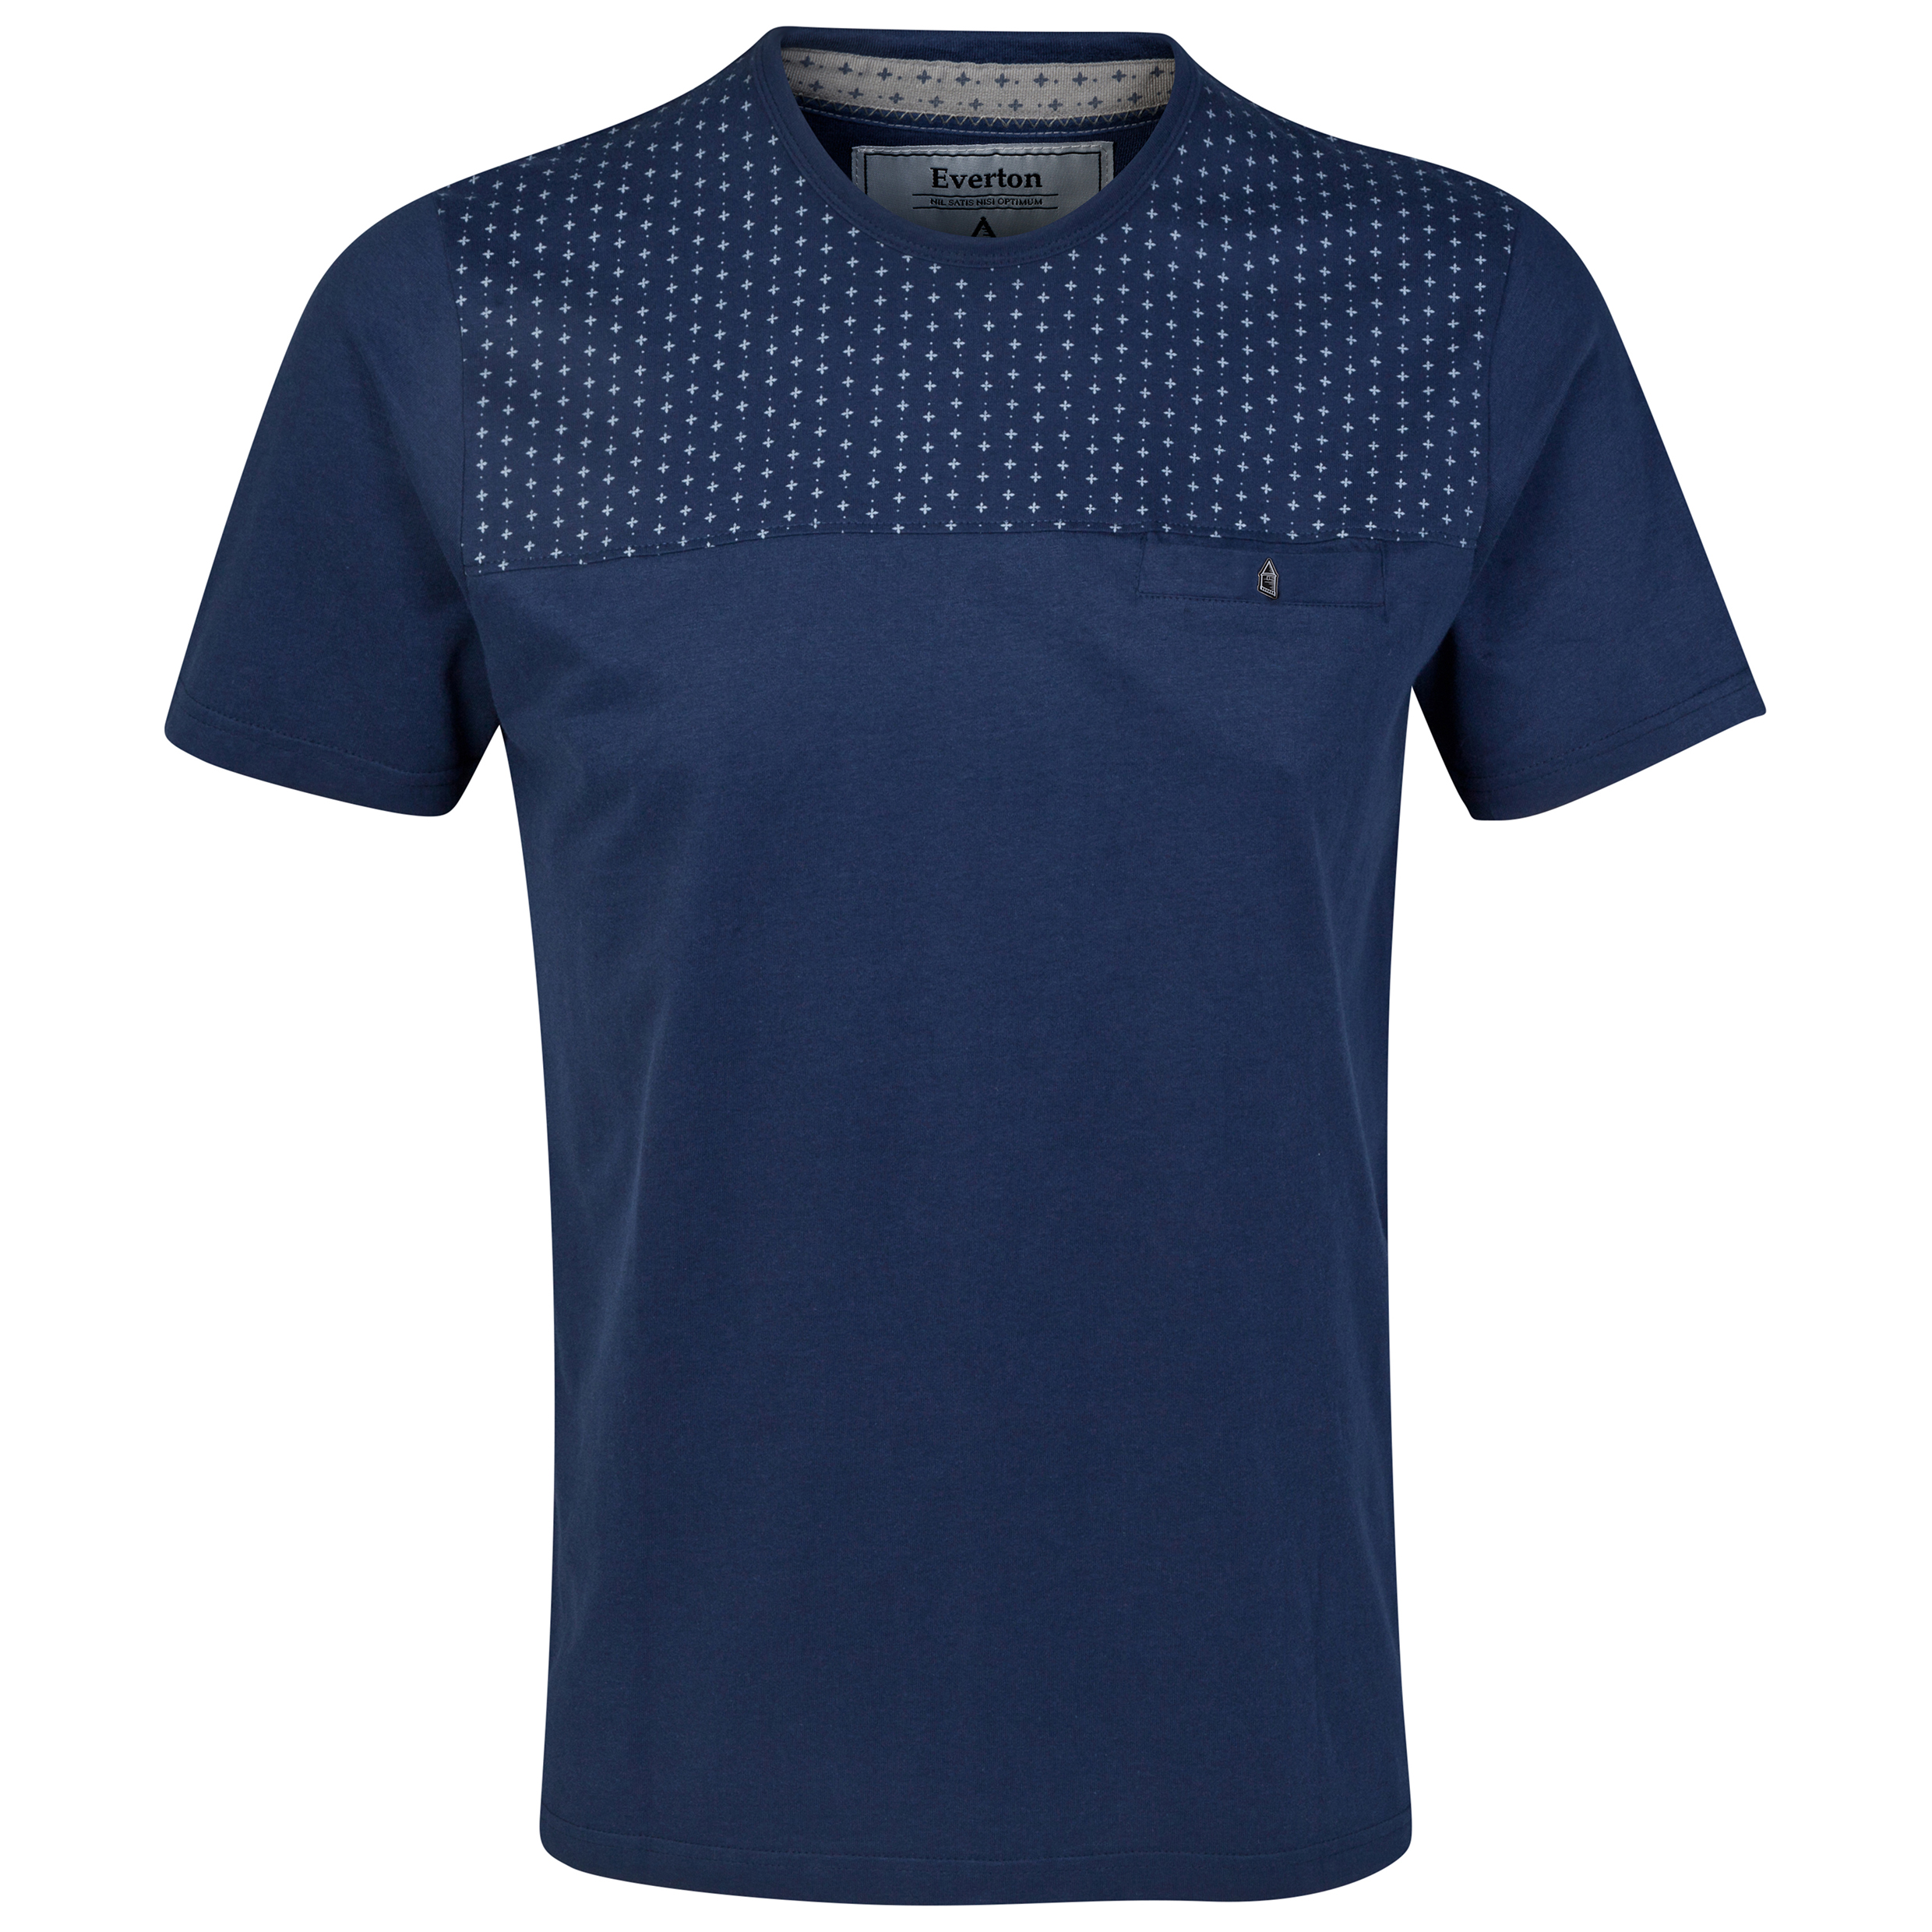 Everton Panel T-Shirt - Navy - Mens